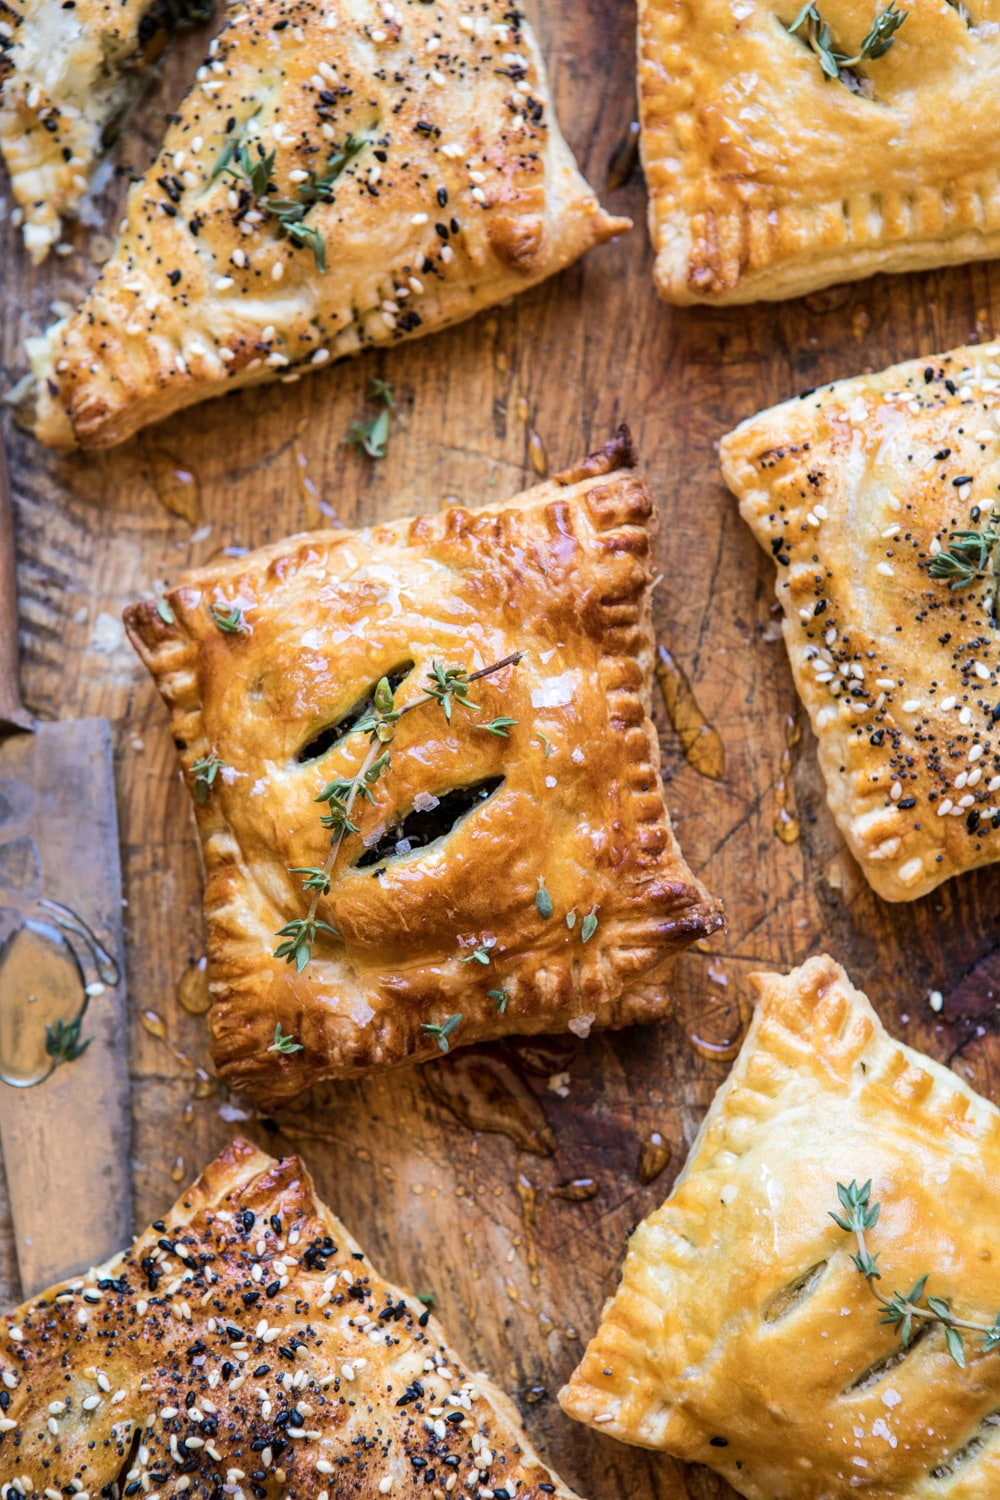 Caramelized Onion, Spinach, and Cheddar Flaky Pastries